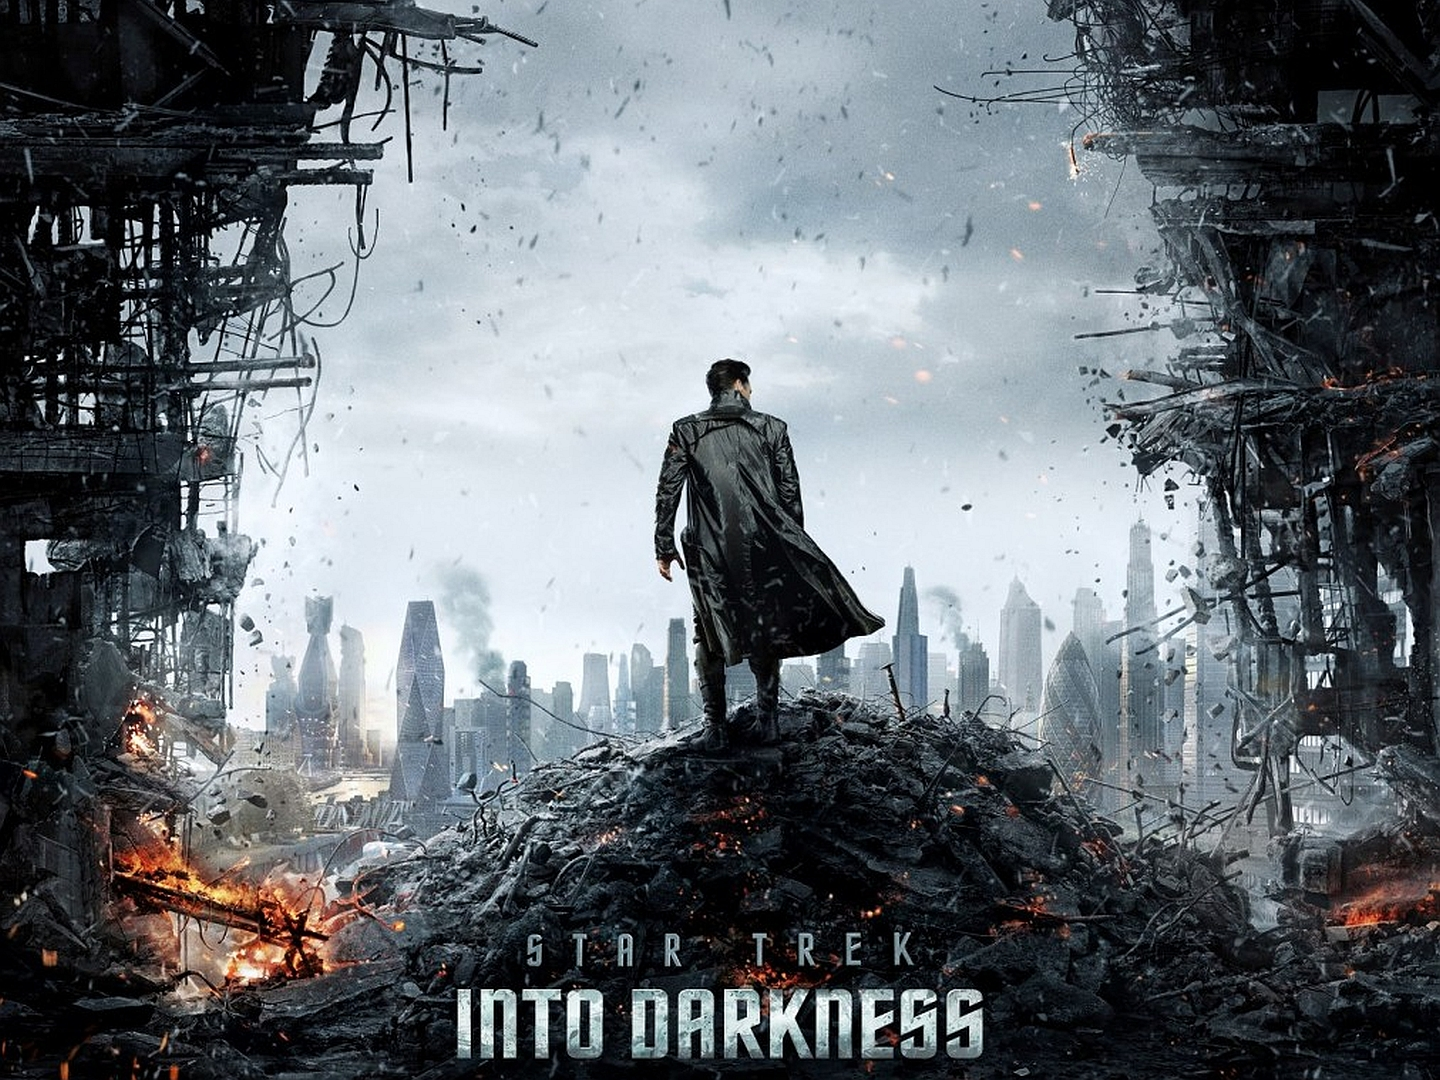 Star Trek Into Darkness wallpaper 1440x1080 001